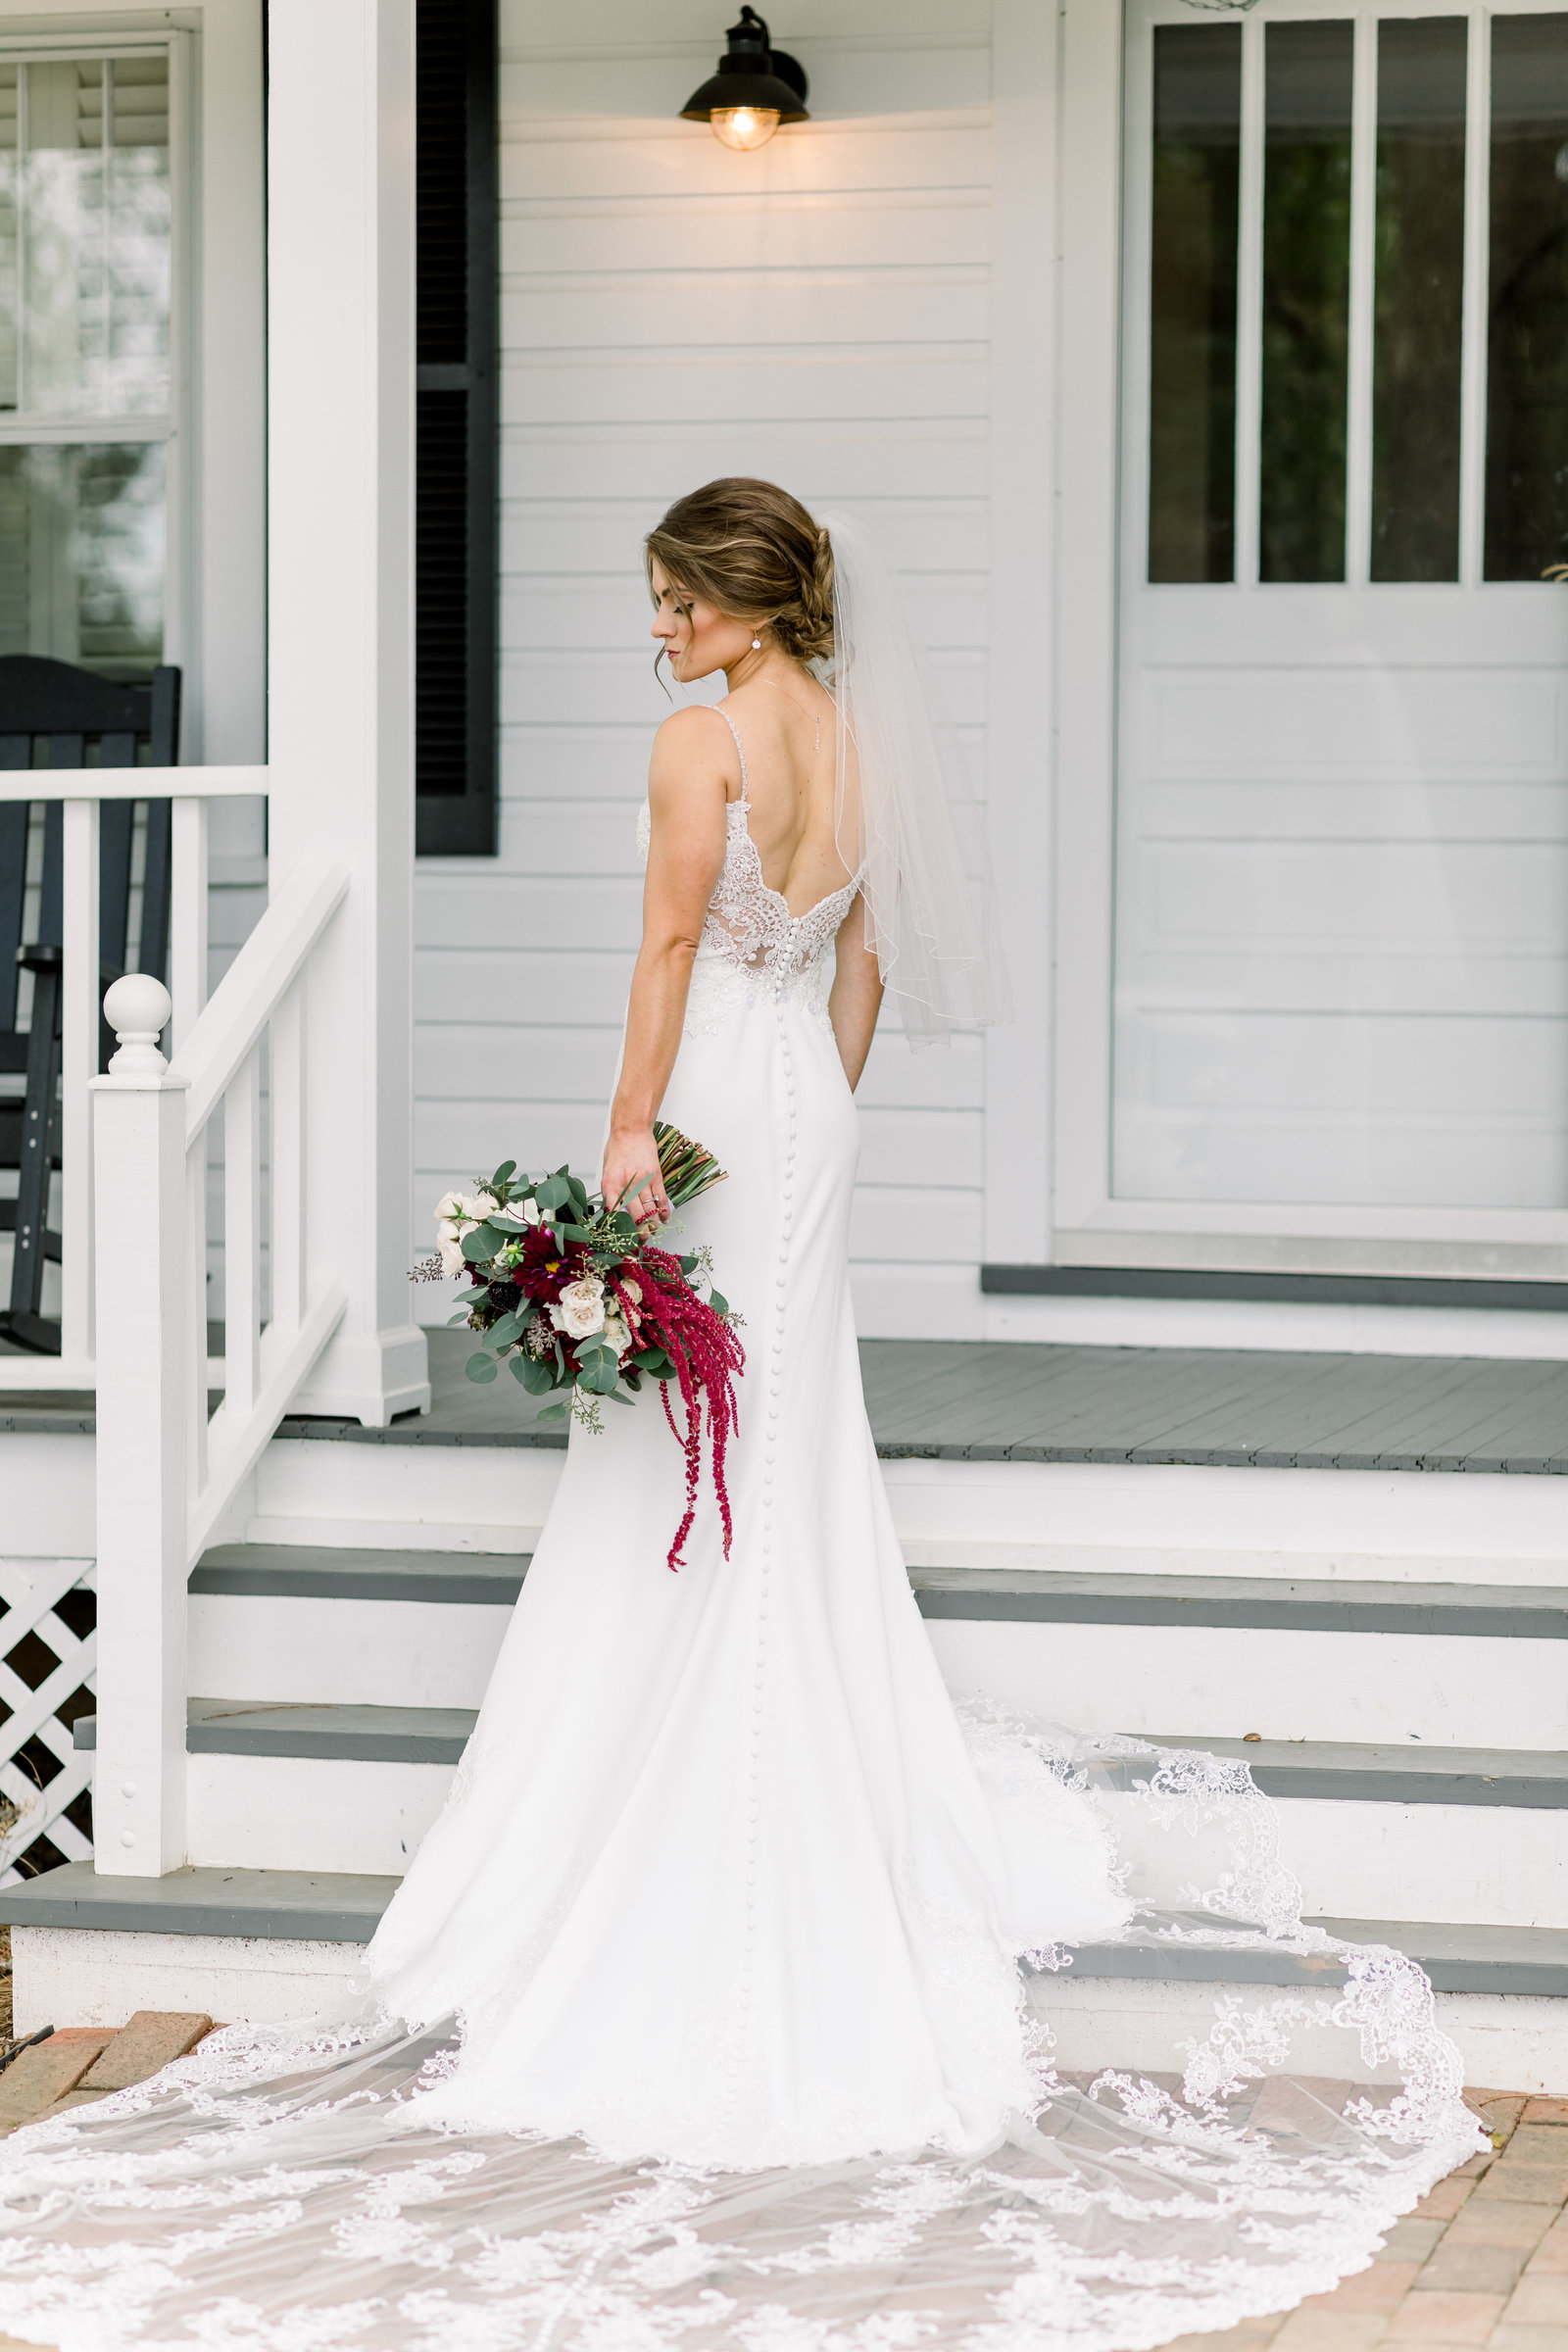 Washington DC Wedding Photography, bride holding her bouquet and standing on steps